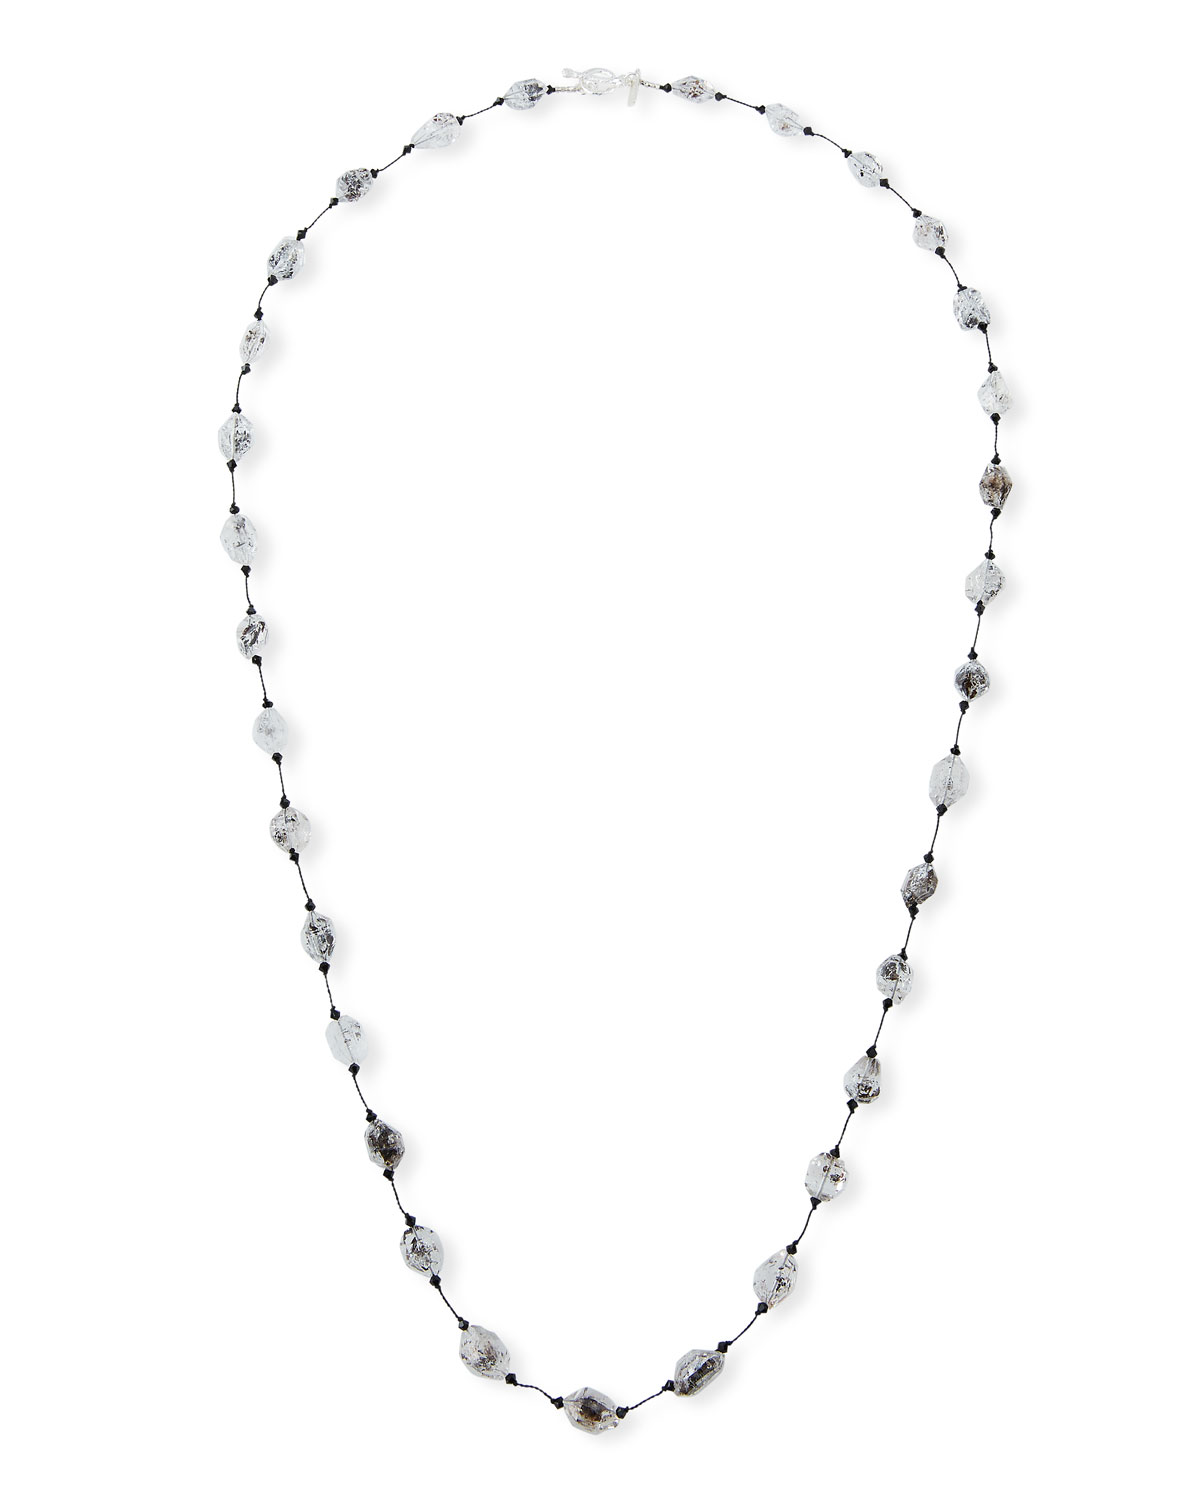 "MARGO MORRISON Herkimer Quartz Diamond Necklace, 35""L"